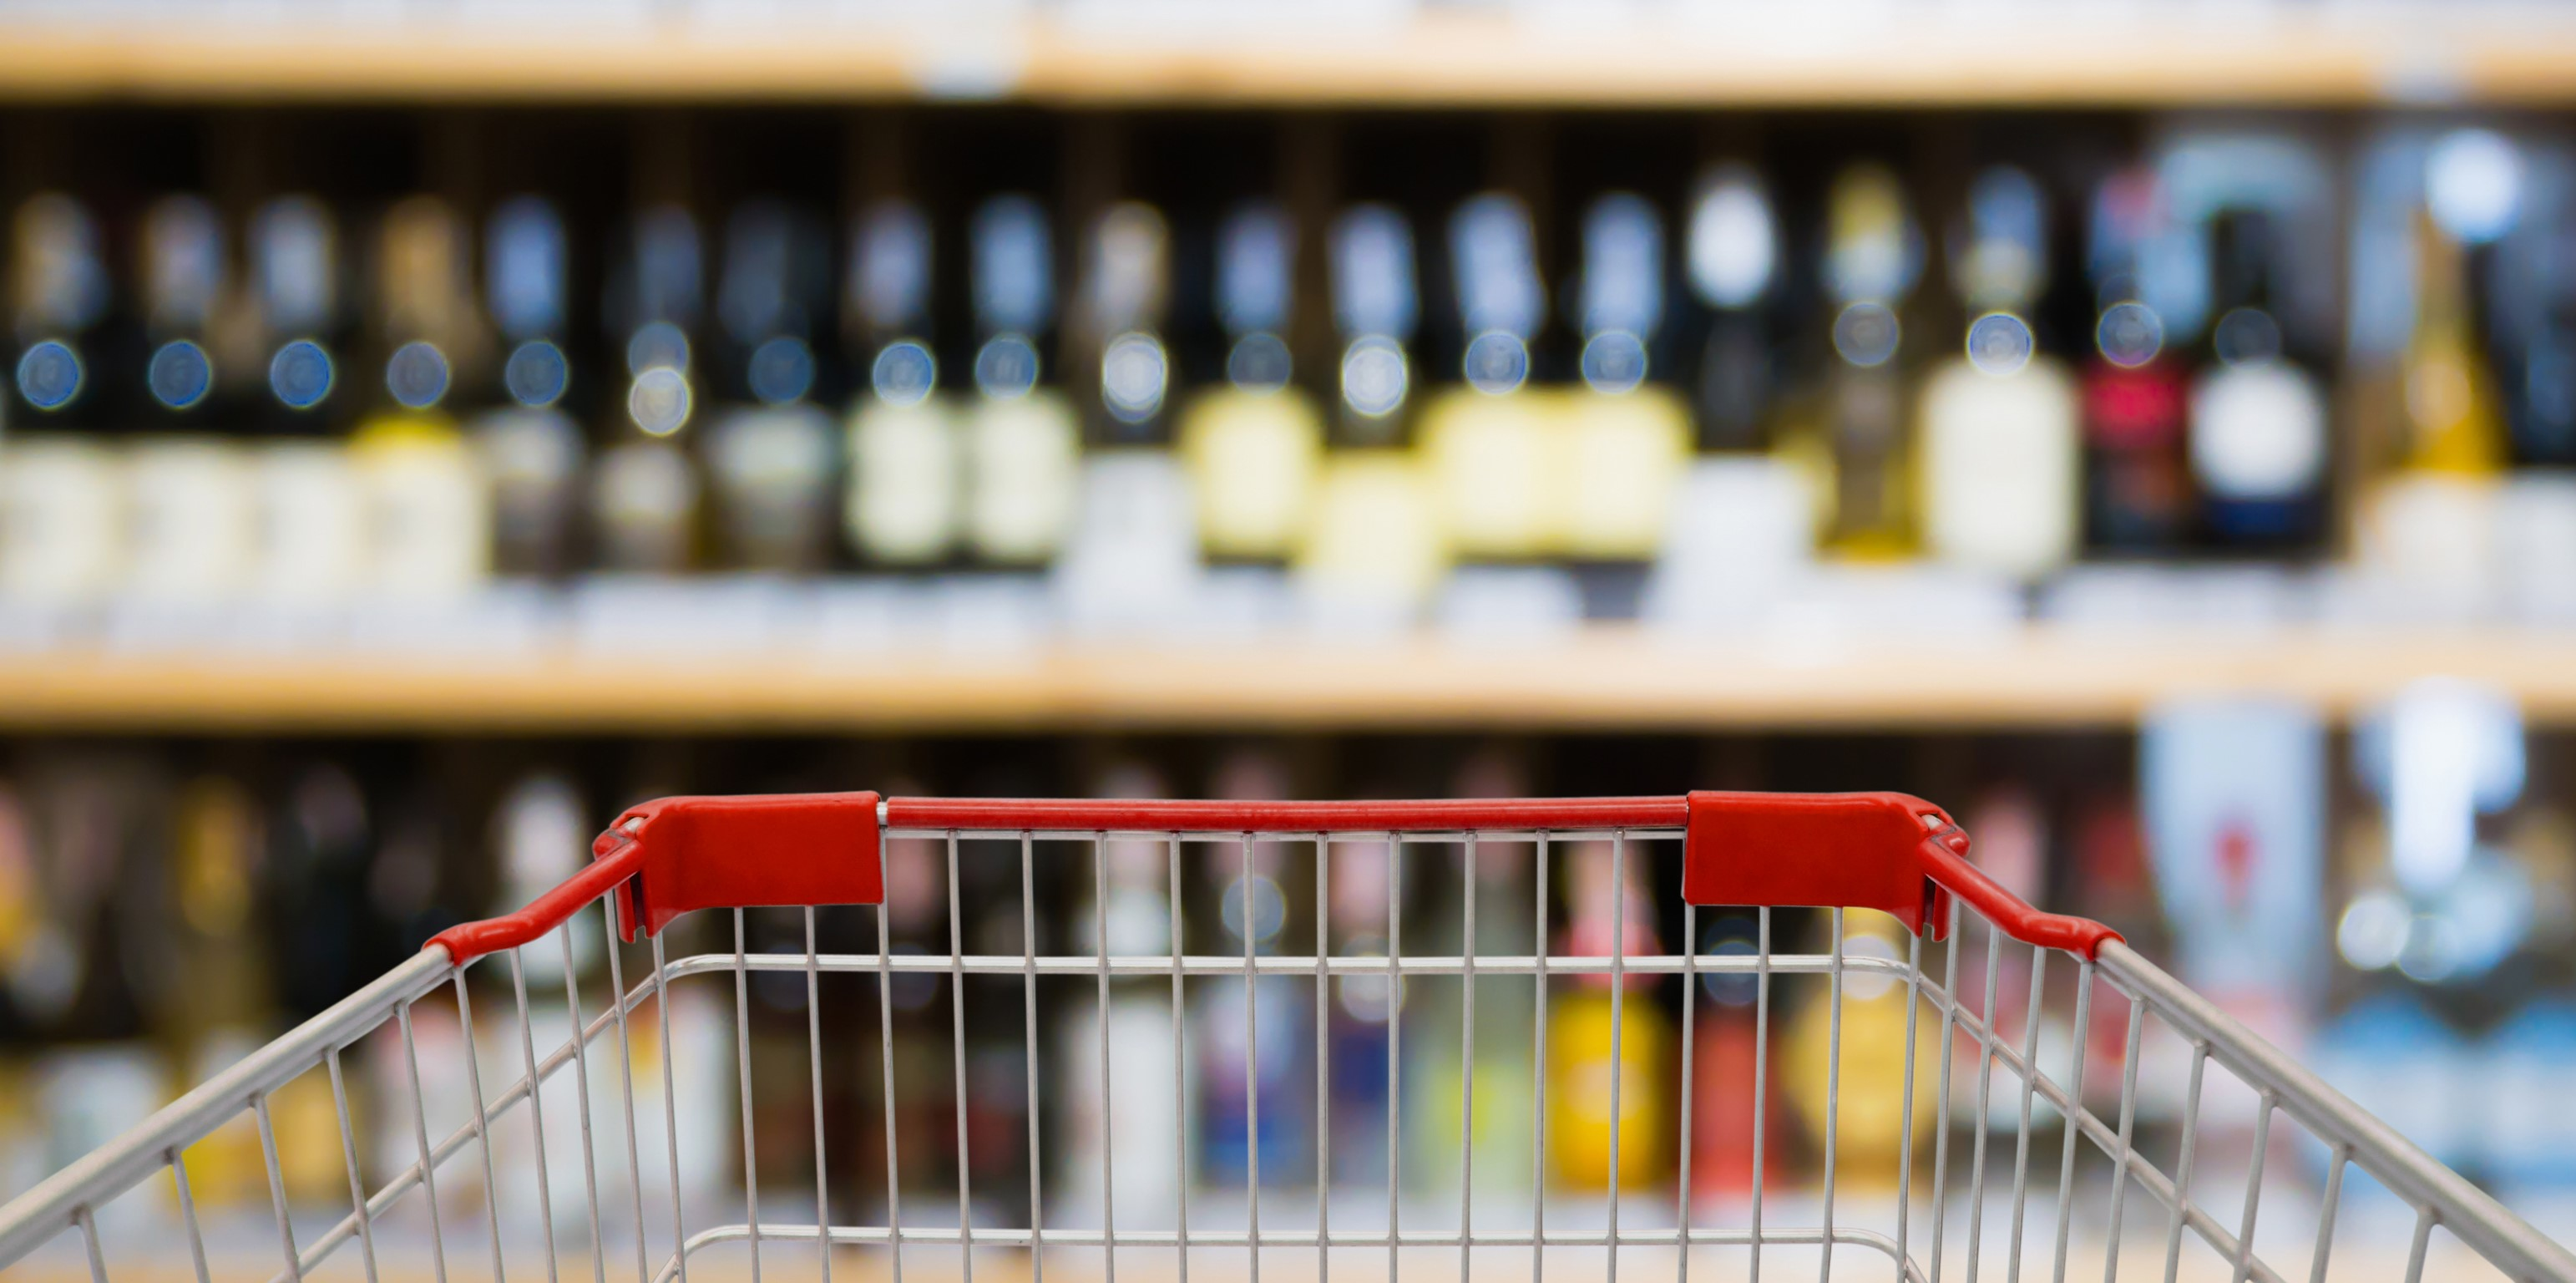 6 Top Tips For Enjoying Alcohol While Losing Weight